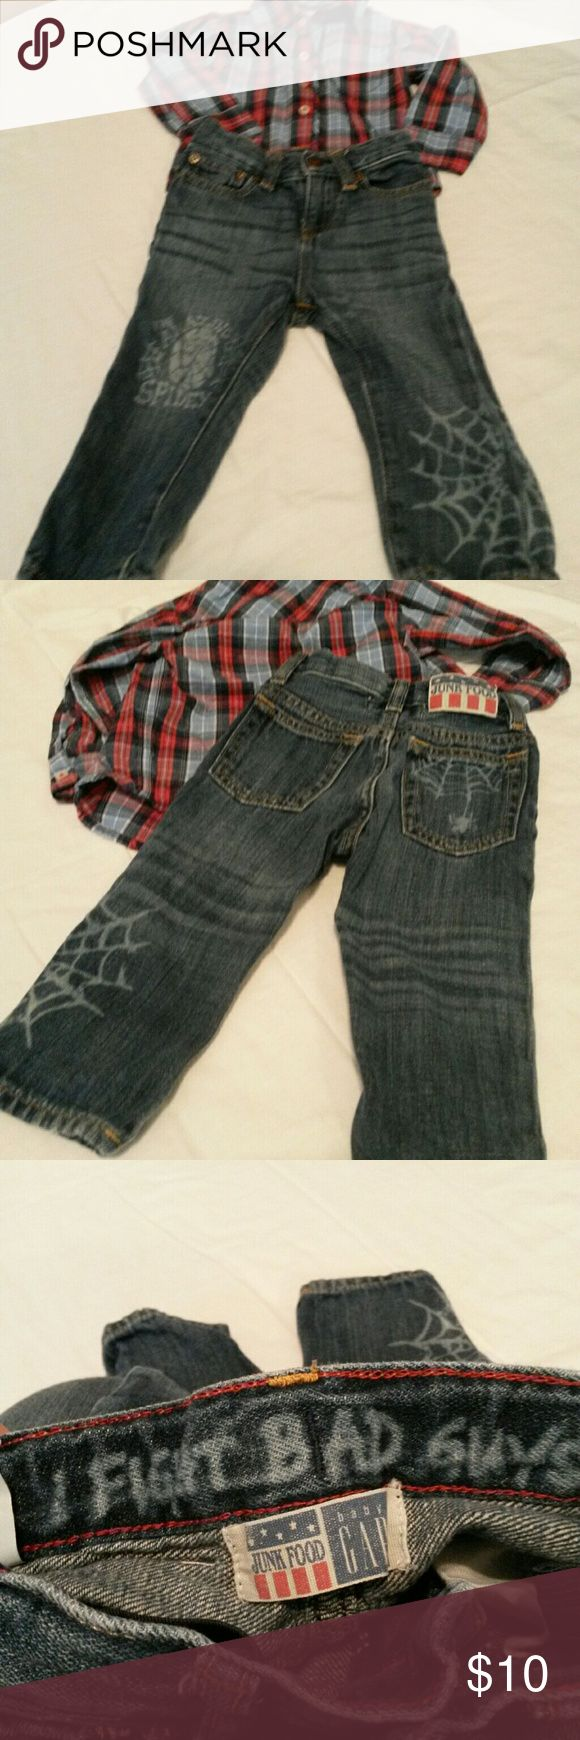 Awesome spiderman jeans with button down I just love these jeans. My grandson looked adorable in them. Soft and comfy.  Baby gap brand. Shirt is little peanut brand button down with long sleeves.  Not purchased together but he wore them together.  Both size 12-18 months. baby gap/little peanut Bottoms Jeans